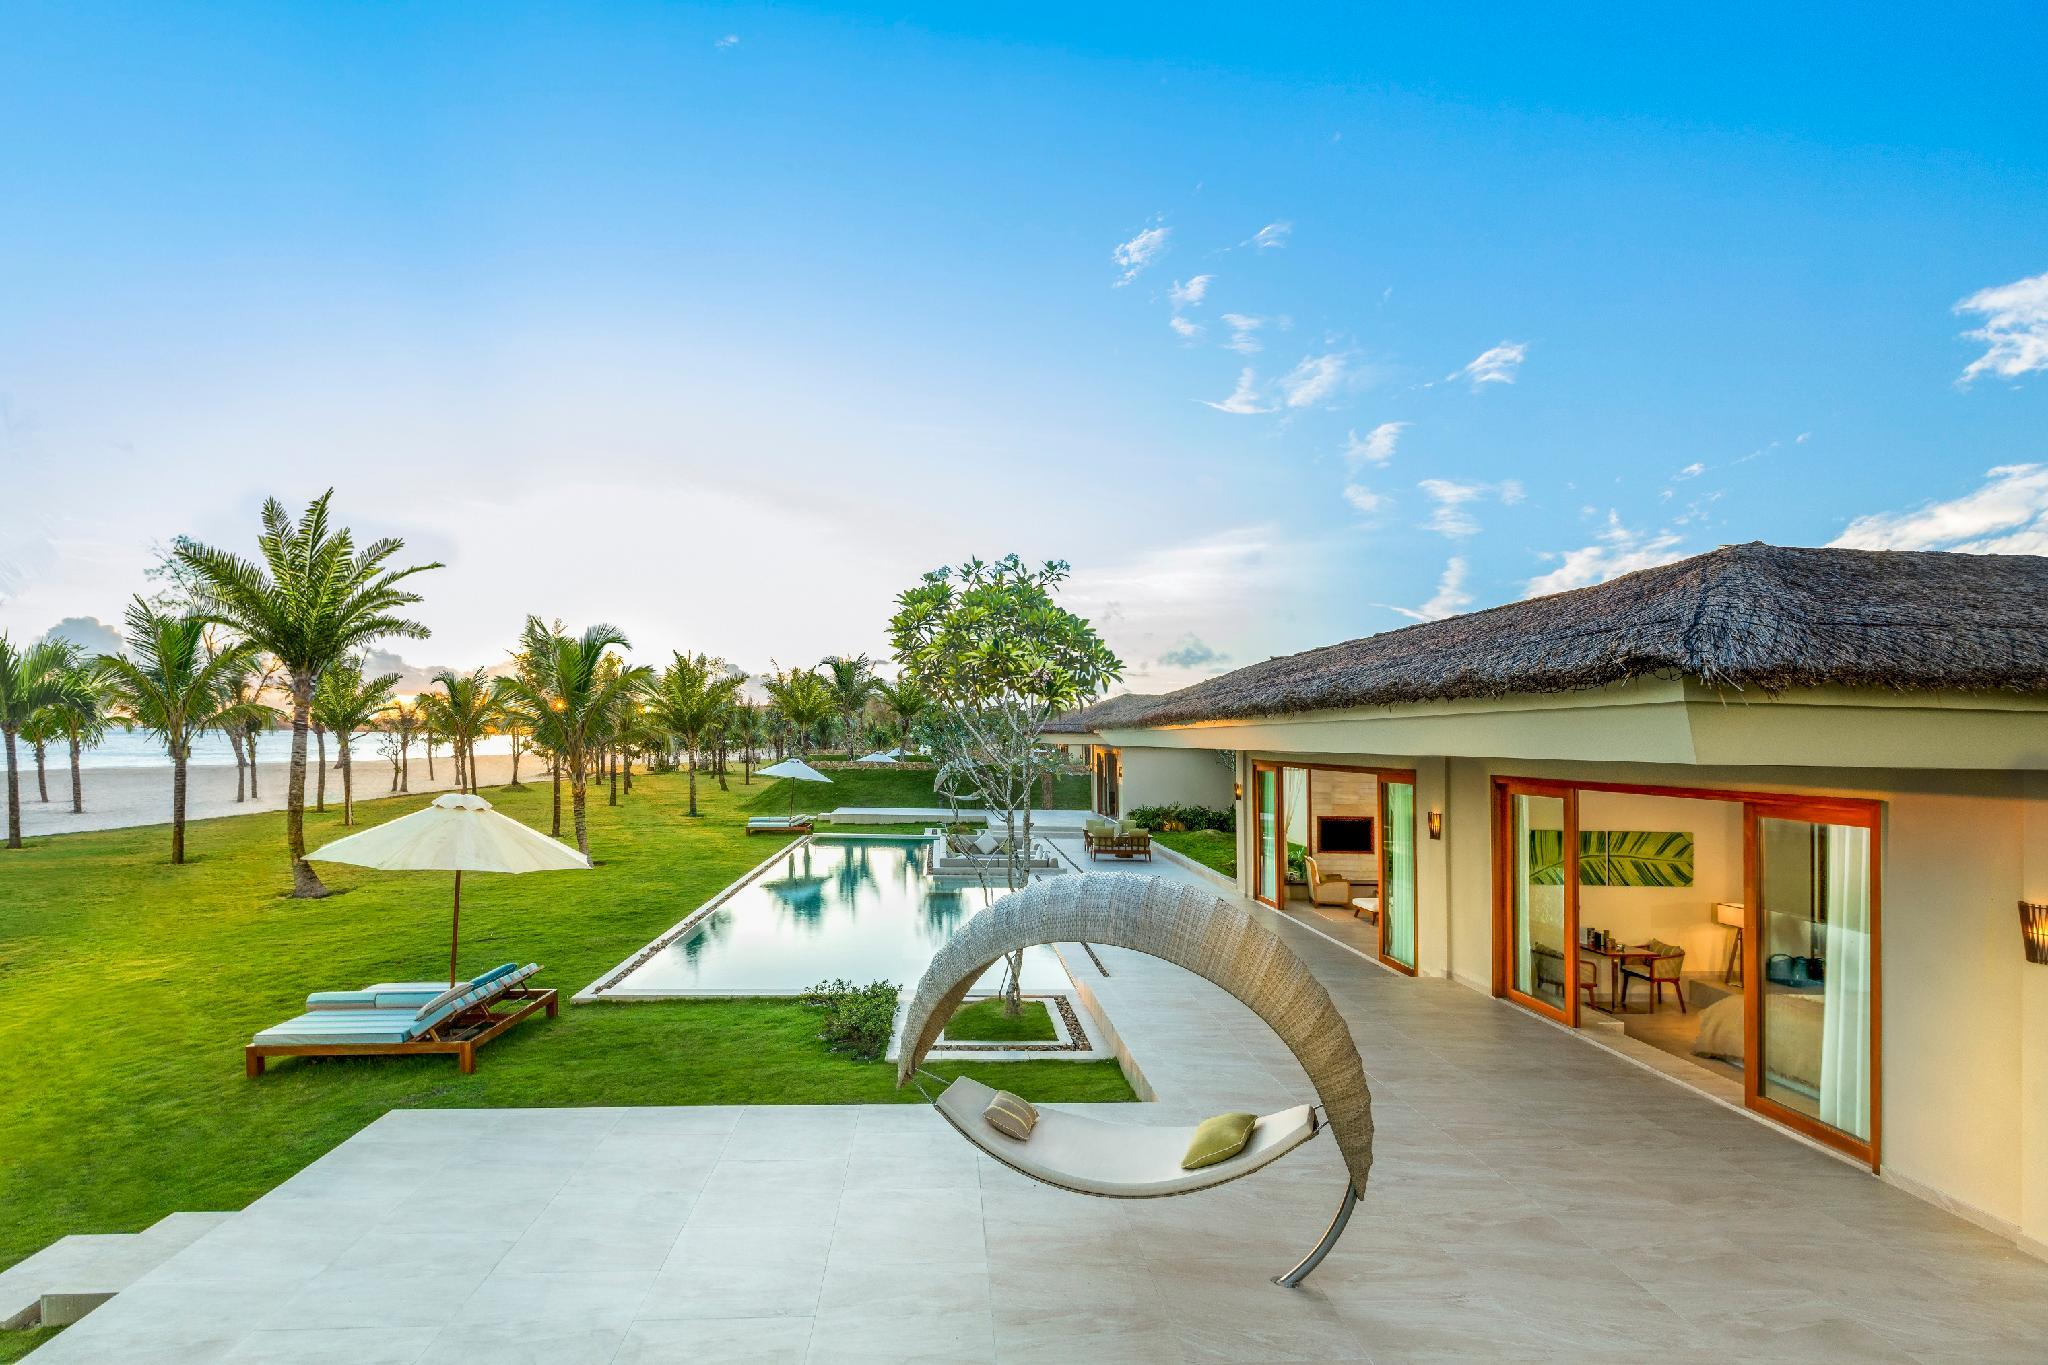 5-Bedroom Grand Beach Villa with Pool - All Spa treatment included